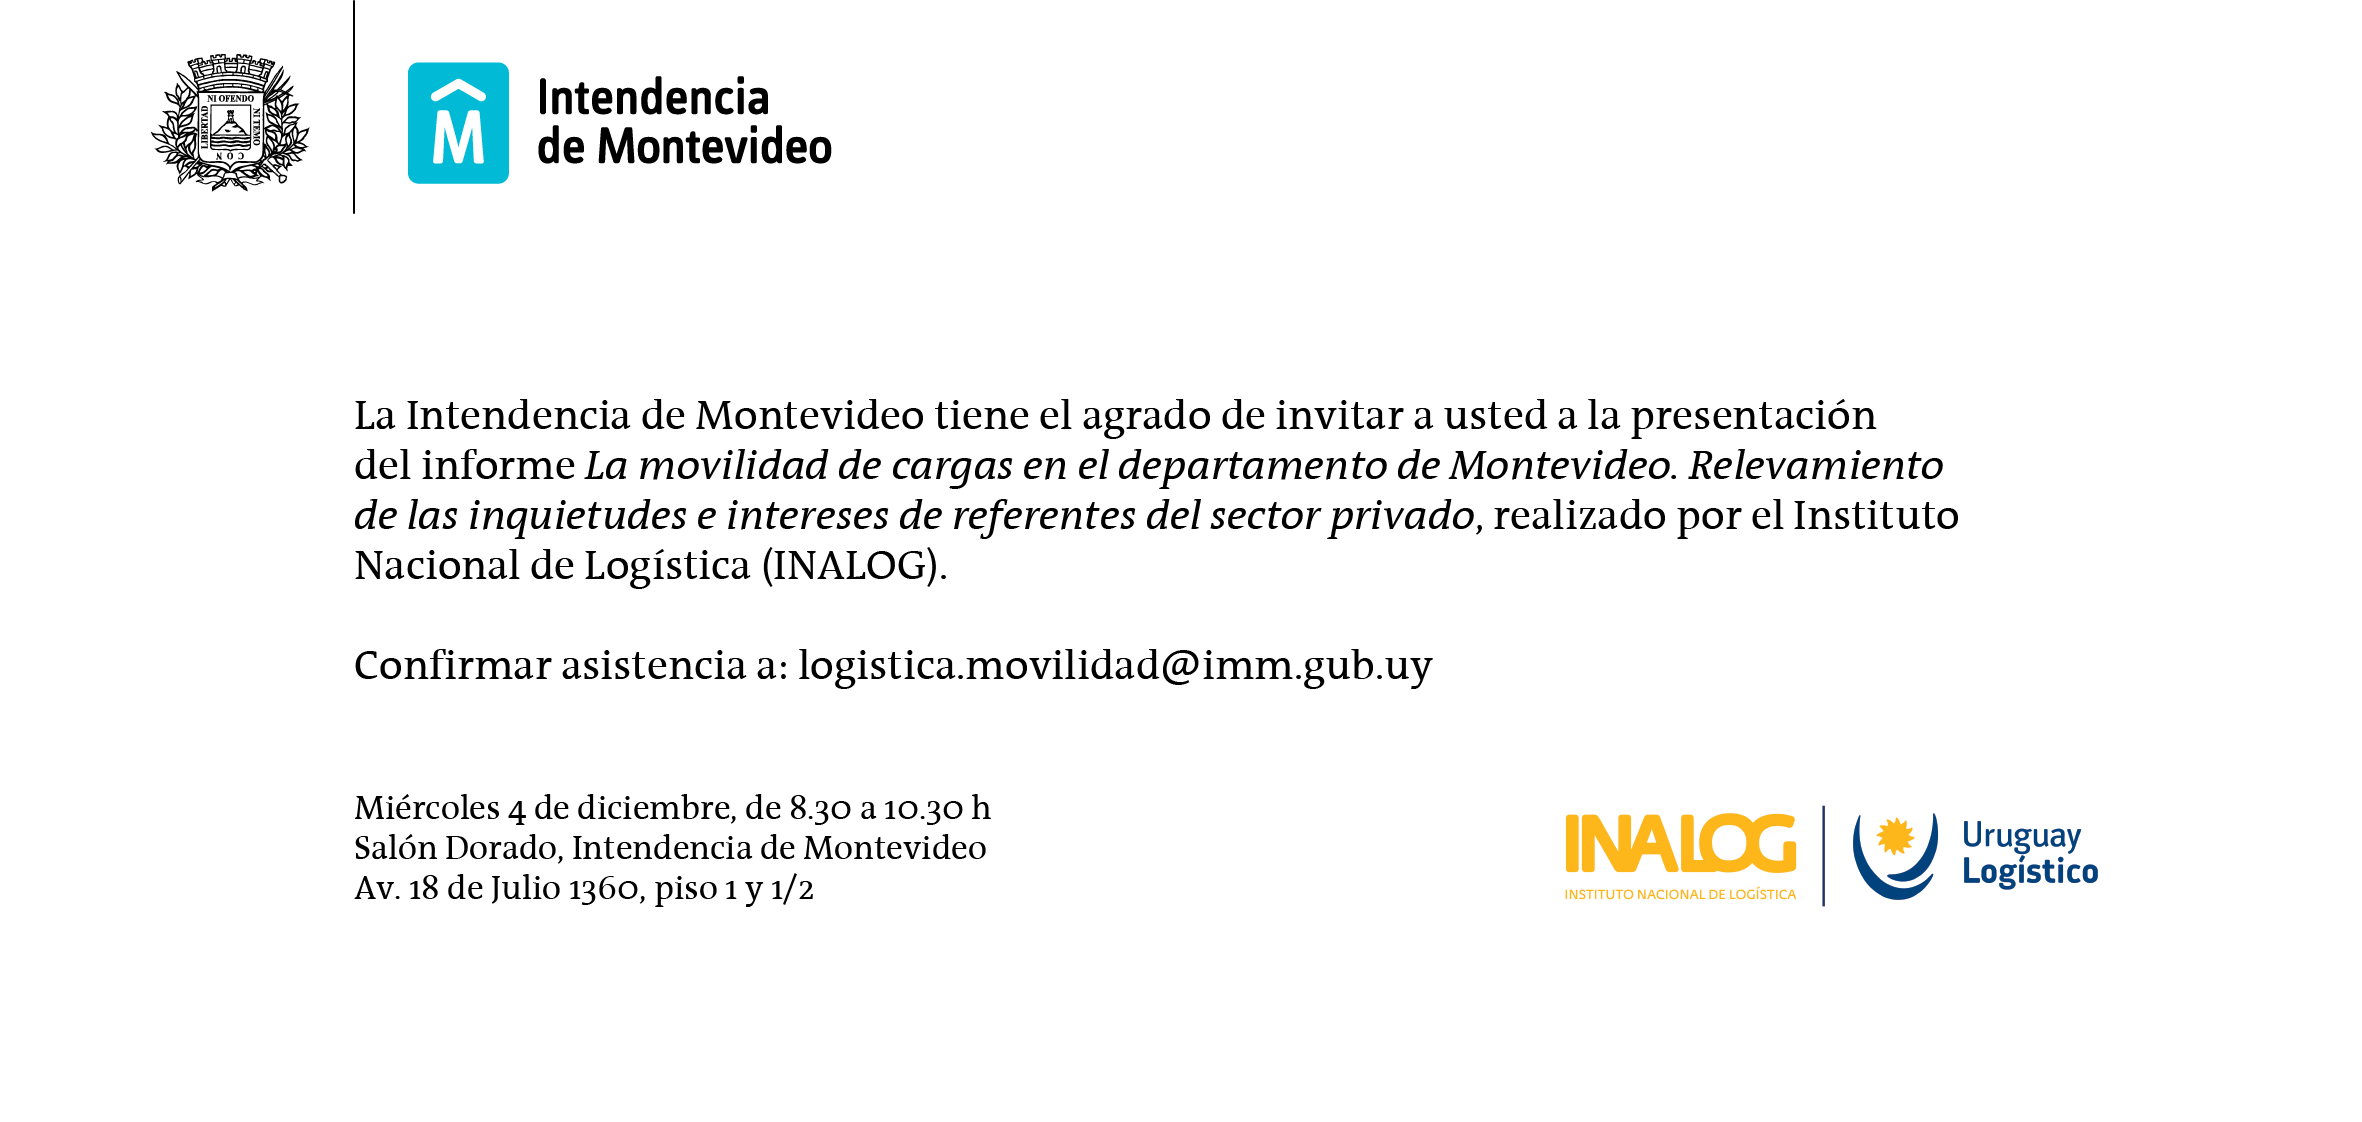 invitacion evento logistica